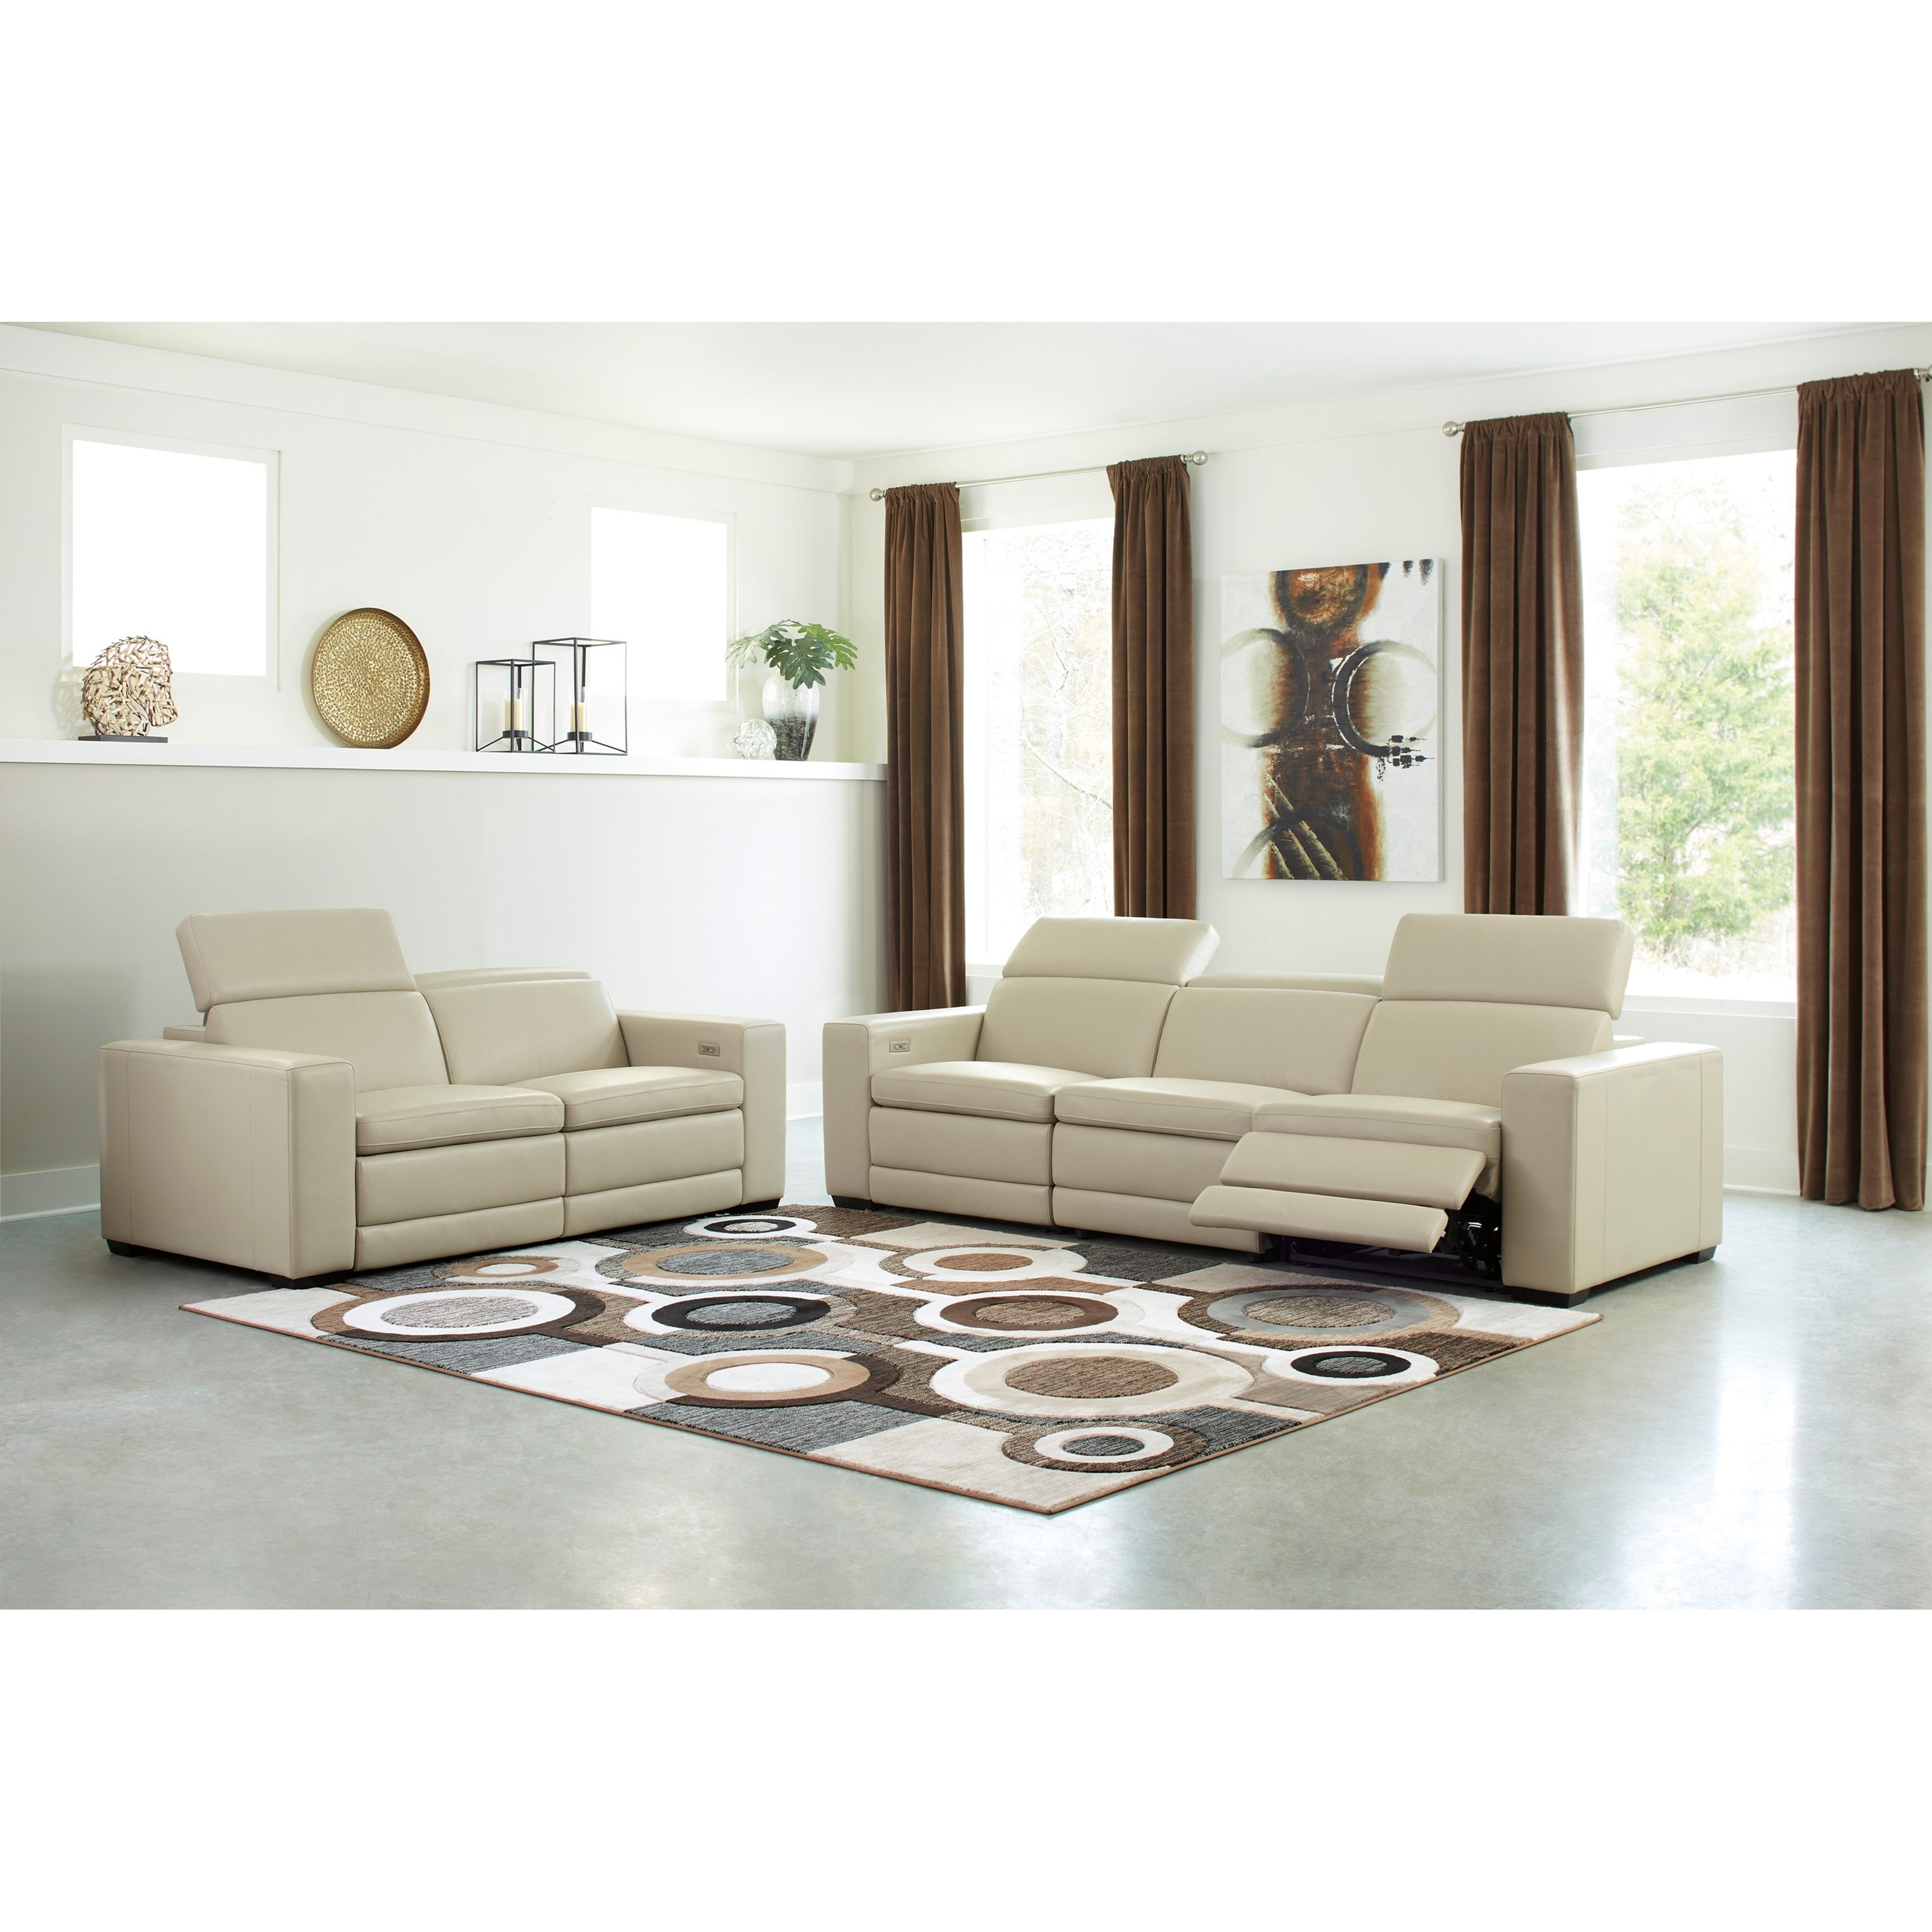 Texline Power Reclining Living Room Group by Signature Design by Ashley at Beck's Furniture